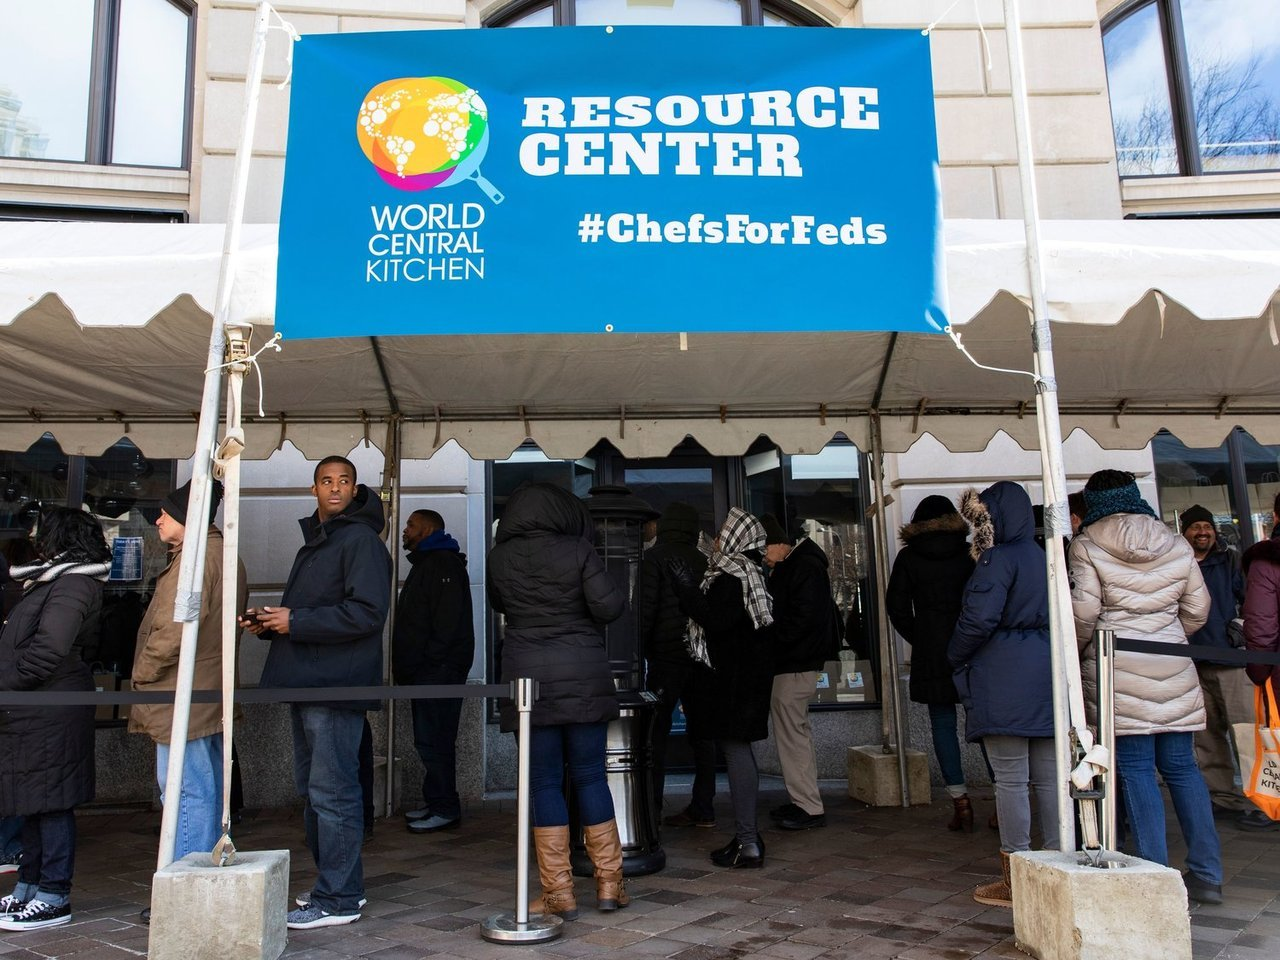 npr :  Above: Federal employees wait in line at World Central Kitchen, a food bank and food distribution center established by celebrity chef José Andrés. The federal government is back open, but it could be several days before workers receive missed paychecks.   Federal Employees Return To Work, But Fears Of Another Shutdown Loom   Hundreds of thousands of federal employees across the country are returning to work after being furloughed for more than a month. Thousands of others in the federal workforce did work during the 35-day shutdown, but didn't get paid.  The Trump administration promises that by Friday federal workers will be paid the two consecutive paychecks that were missed as a result of the government being shuttered.   ALEX EDELMAN/AFP/Getty Images